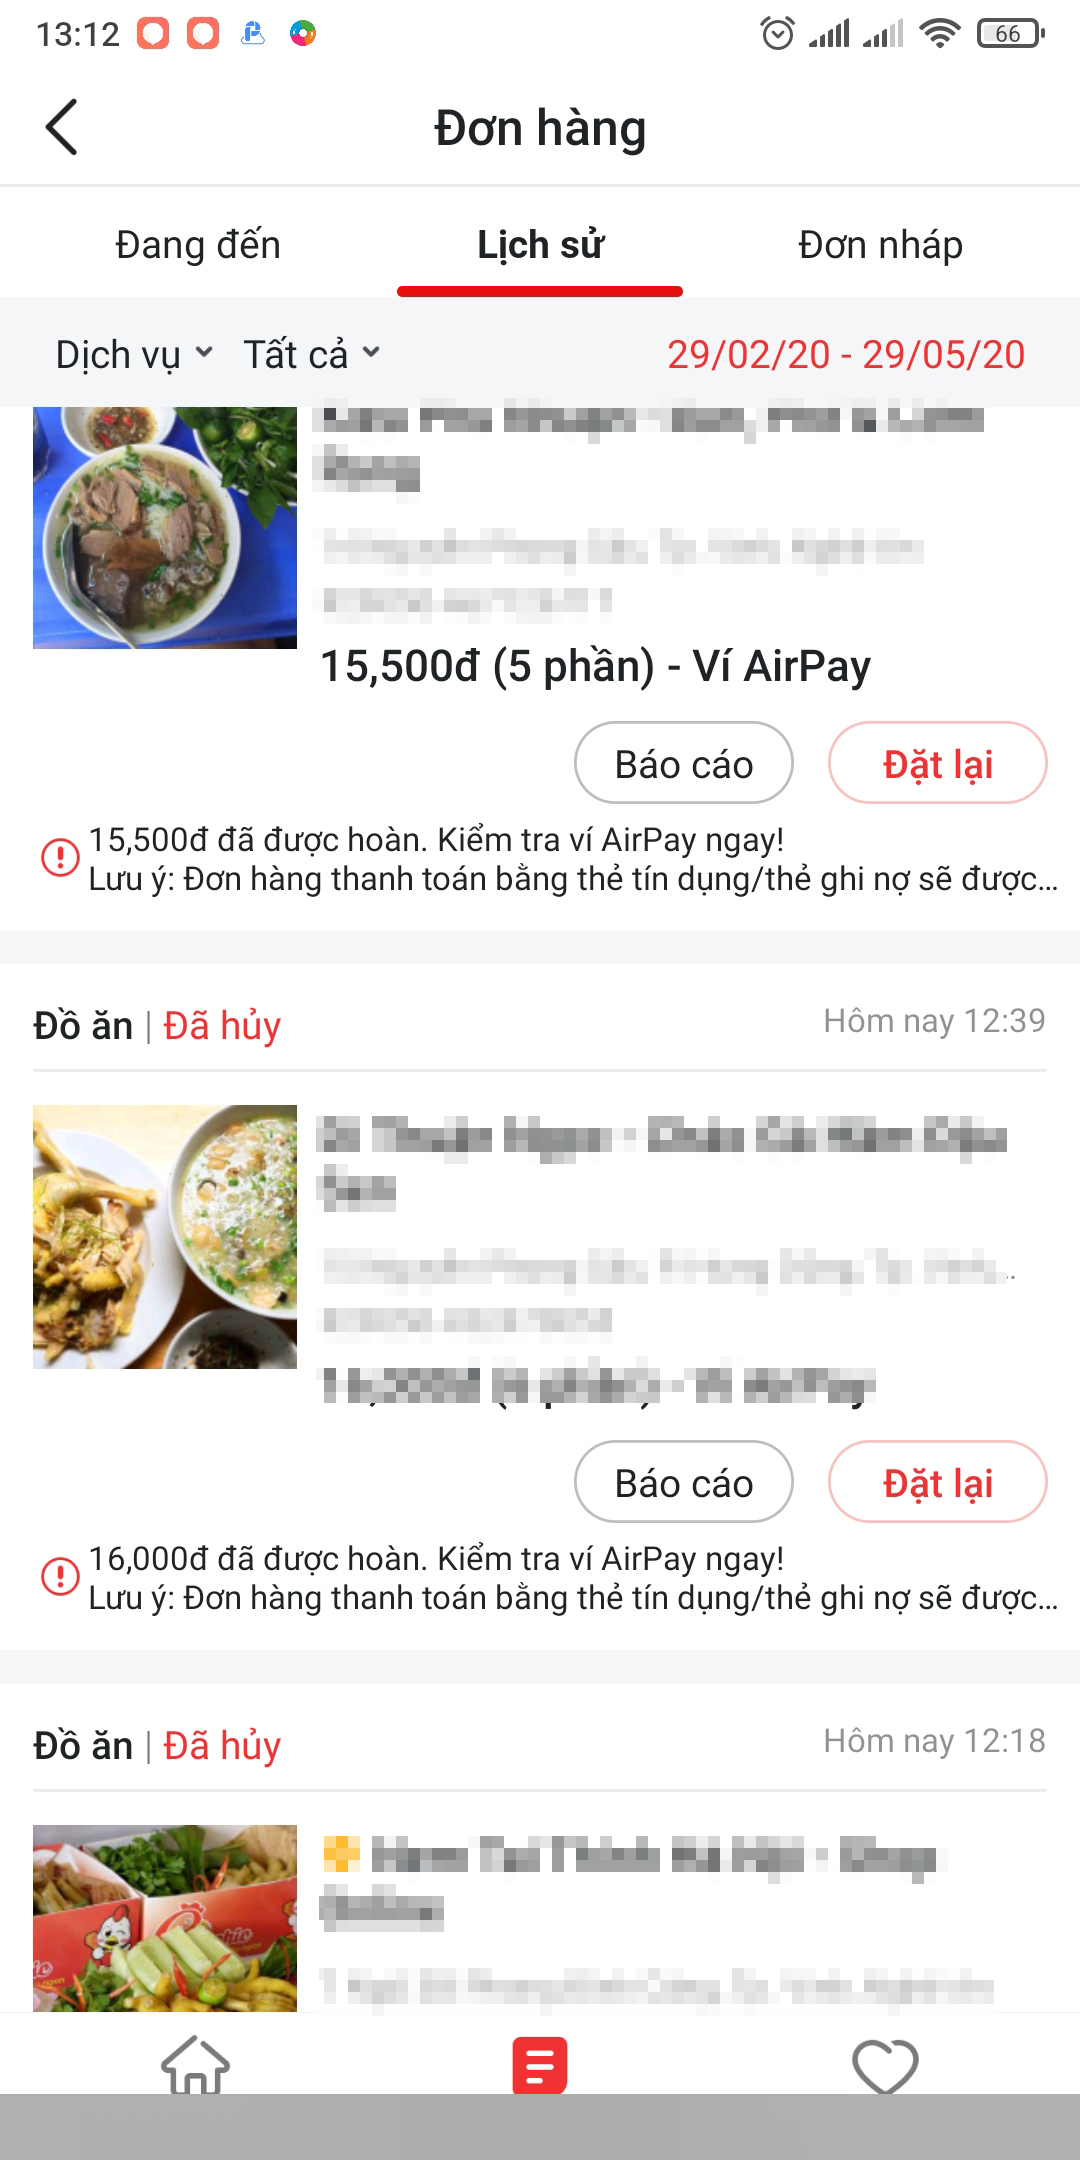 Screenshot_2020-05-29-13-12-18-335_com.shopee.vn.jpg